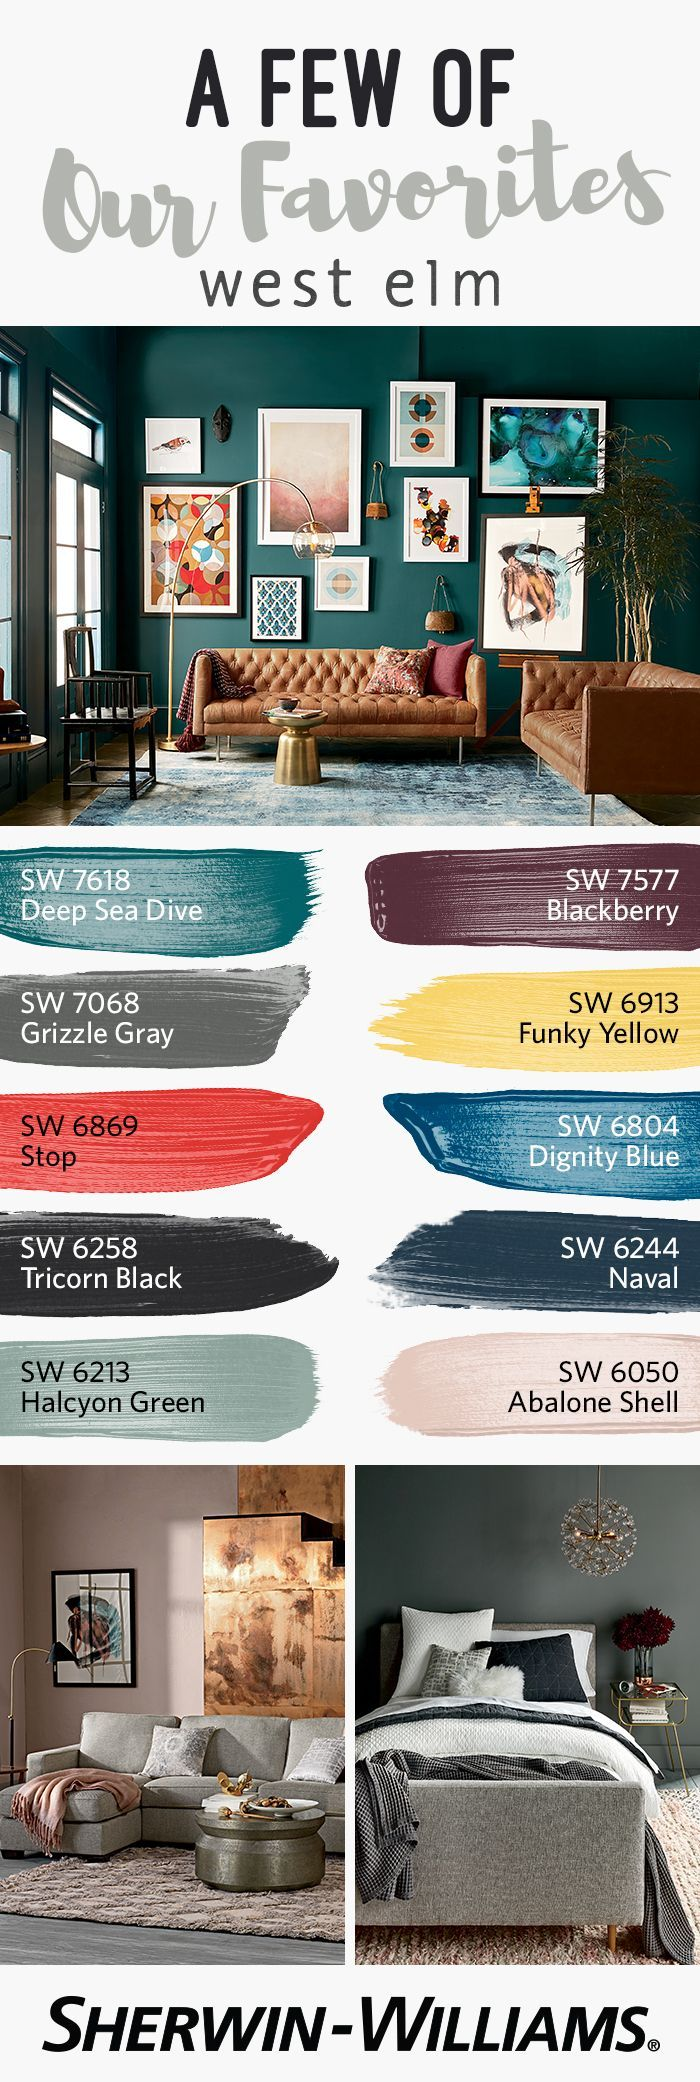 Our Fall Winter 2016 Paint Palette From Westelm Is A Refreshingly Crisp Take On